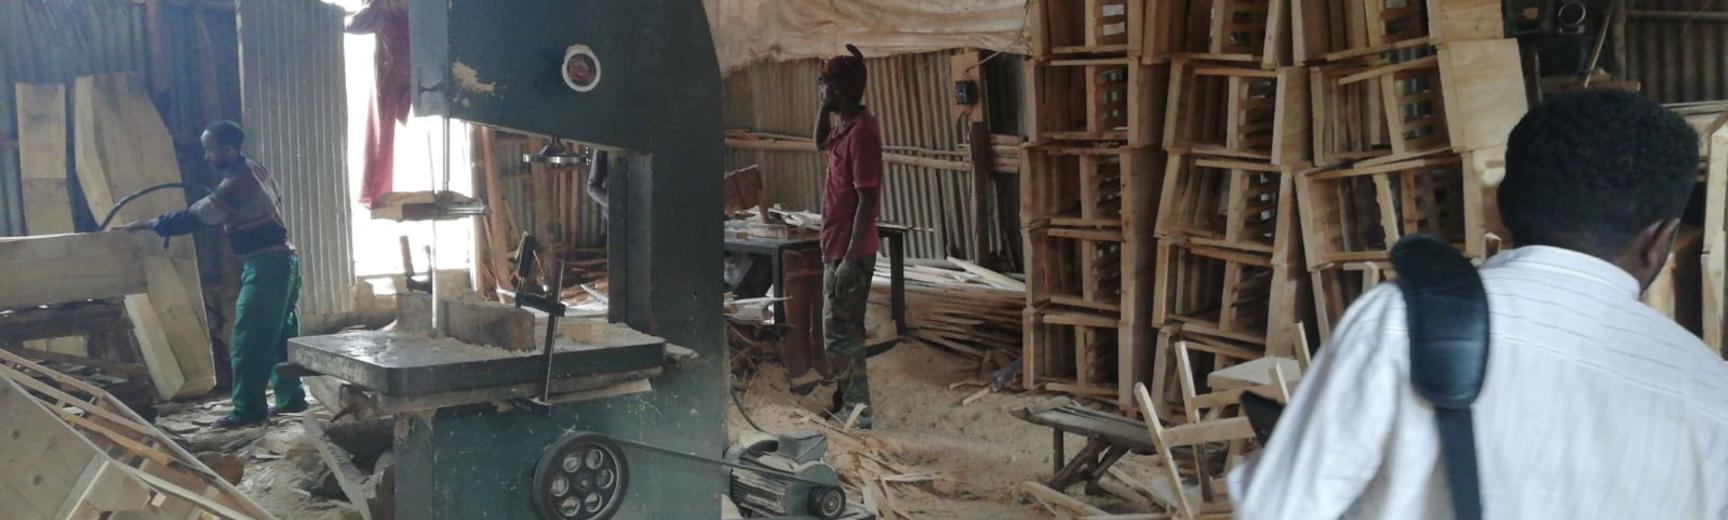 Men working in a messy factory in Addis Ababa